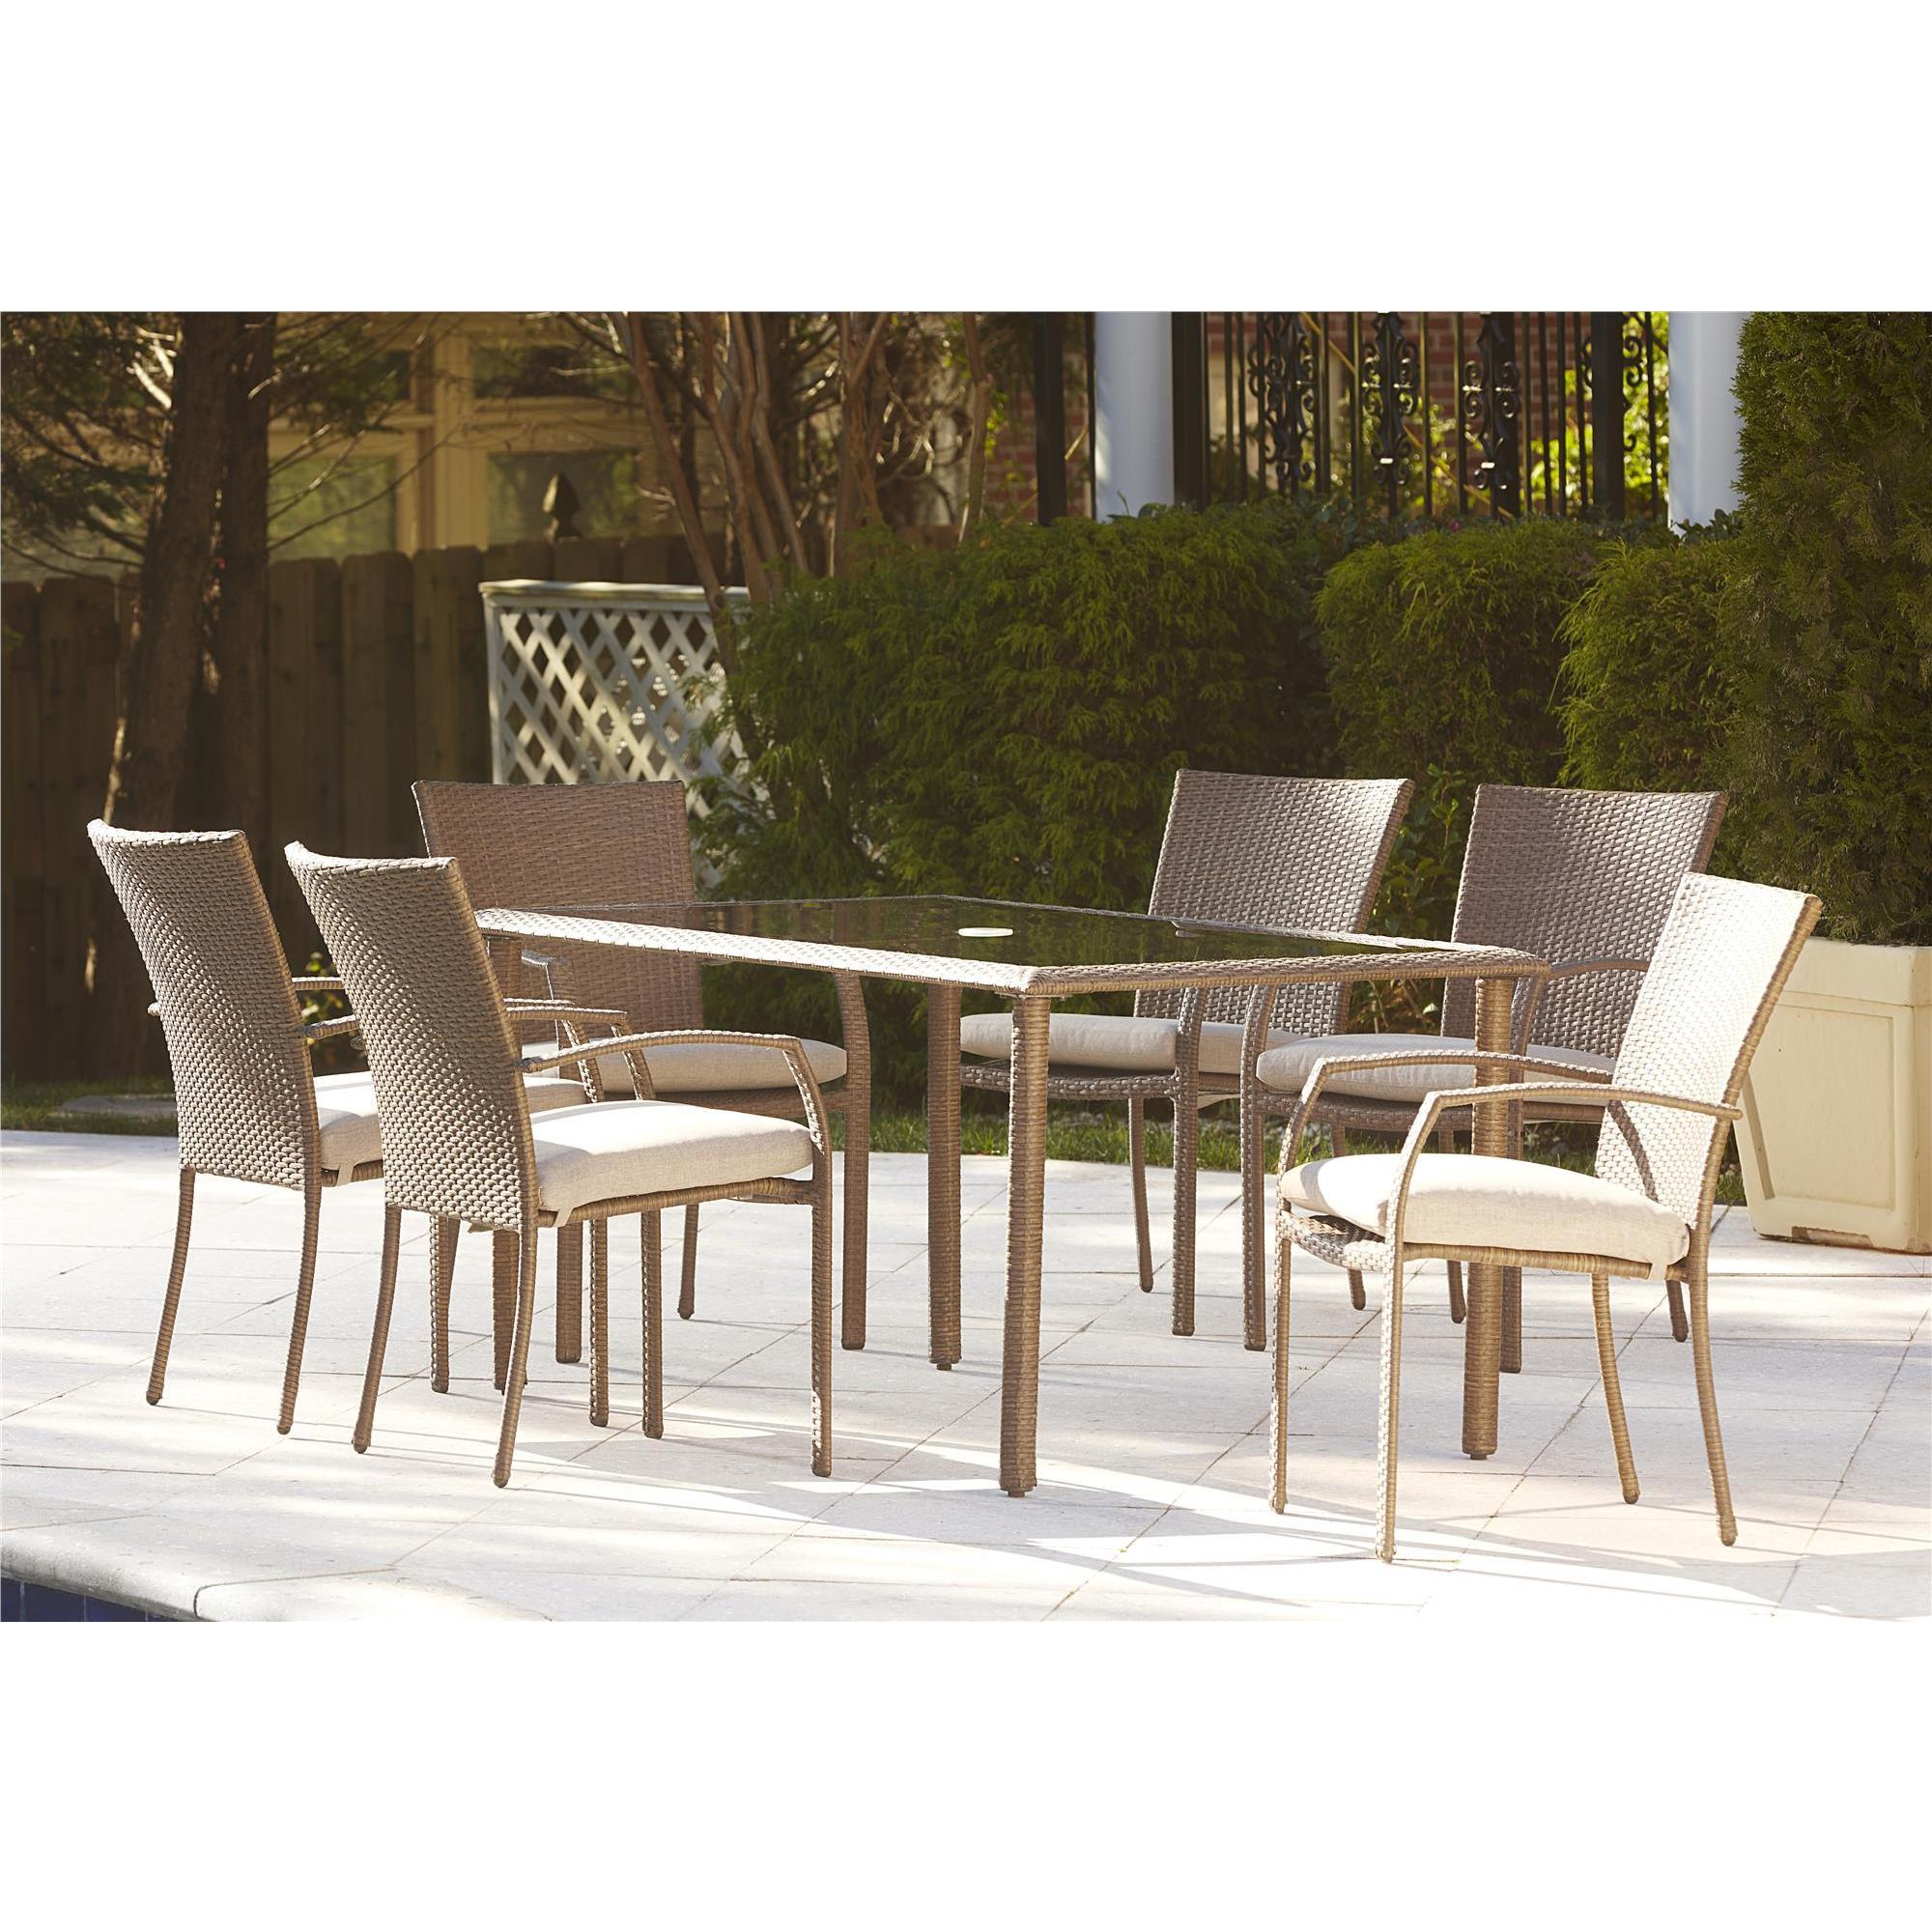 Cosco Outdoor 7 piece Steel Woven Wicker Patio Dining Set Free